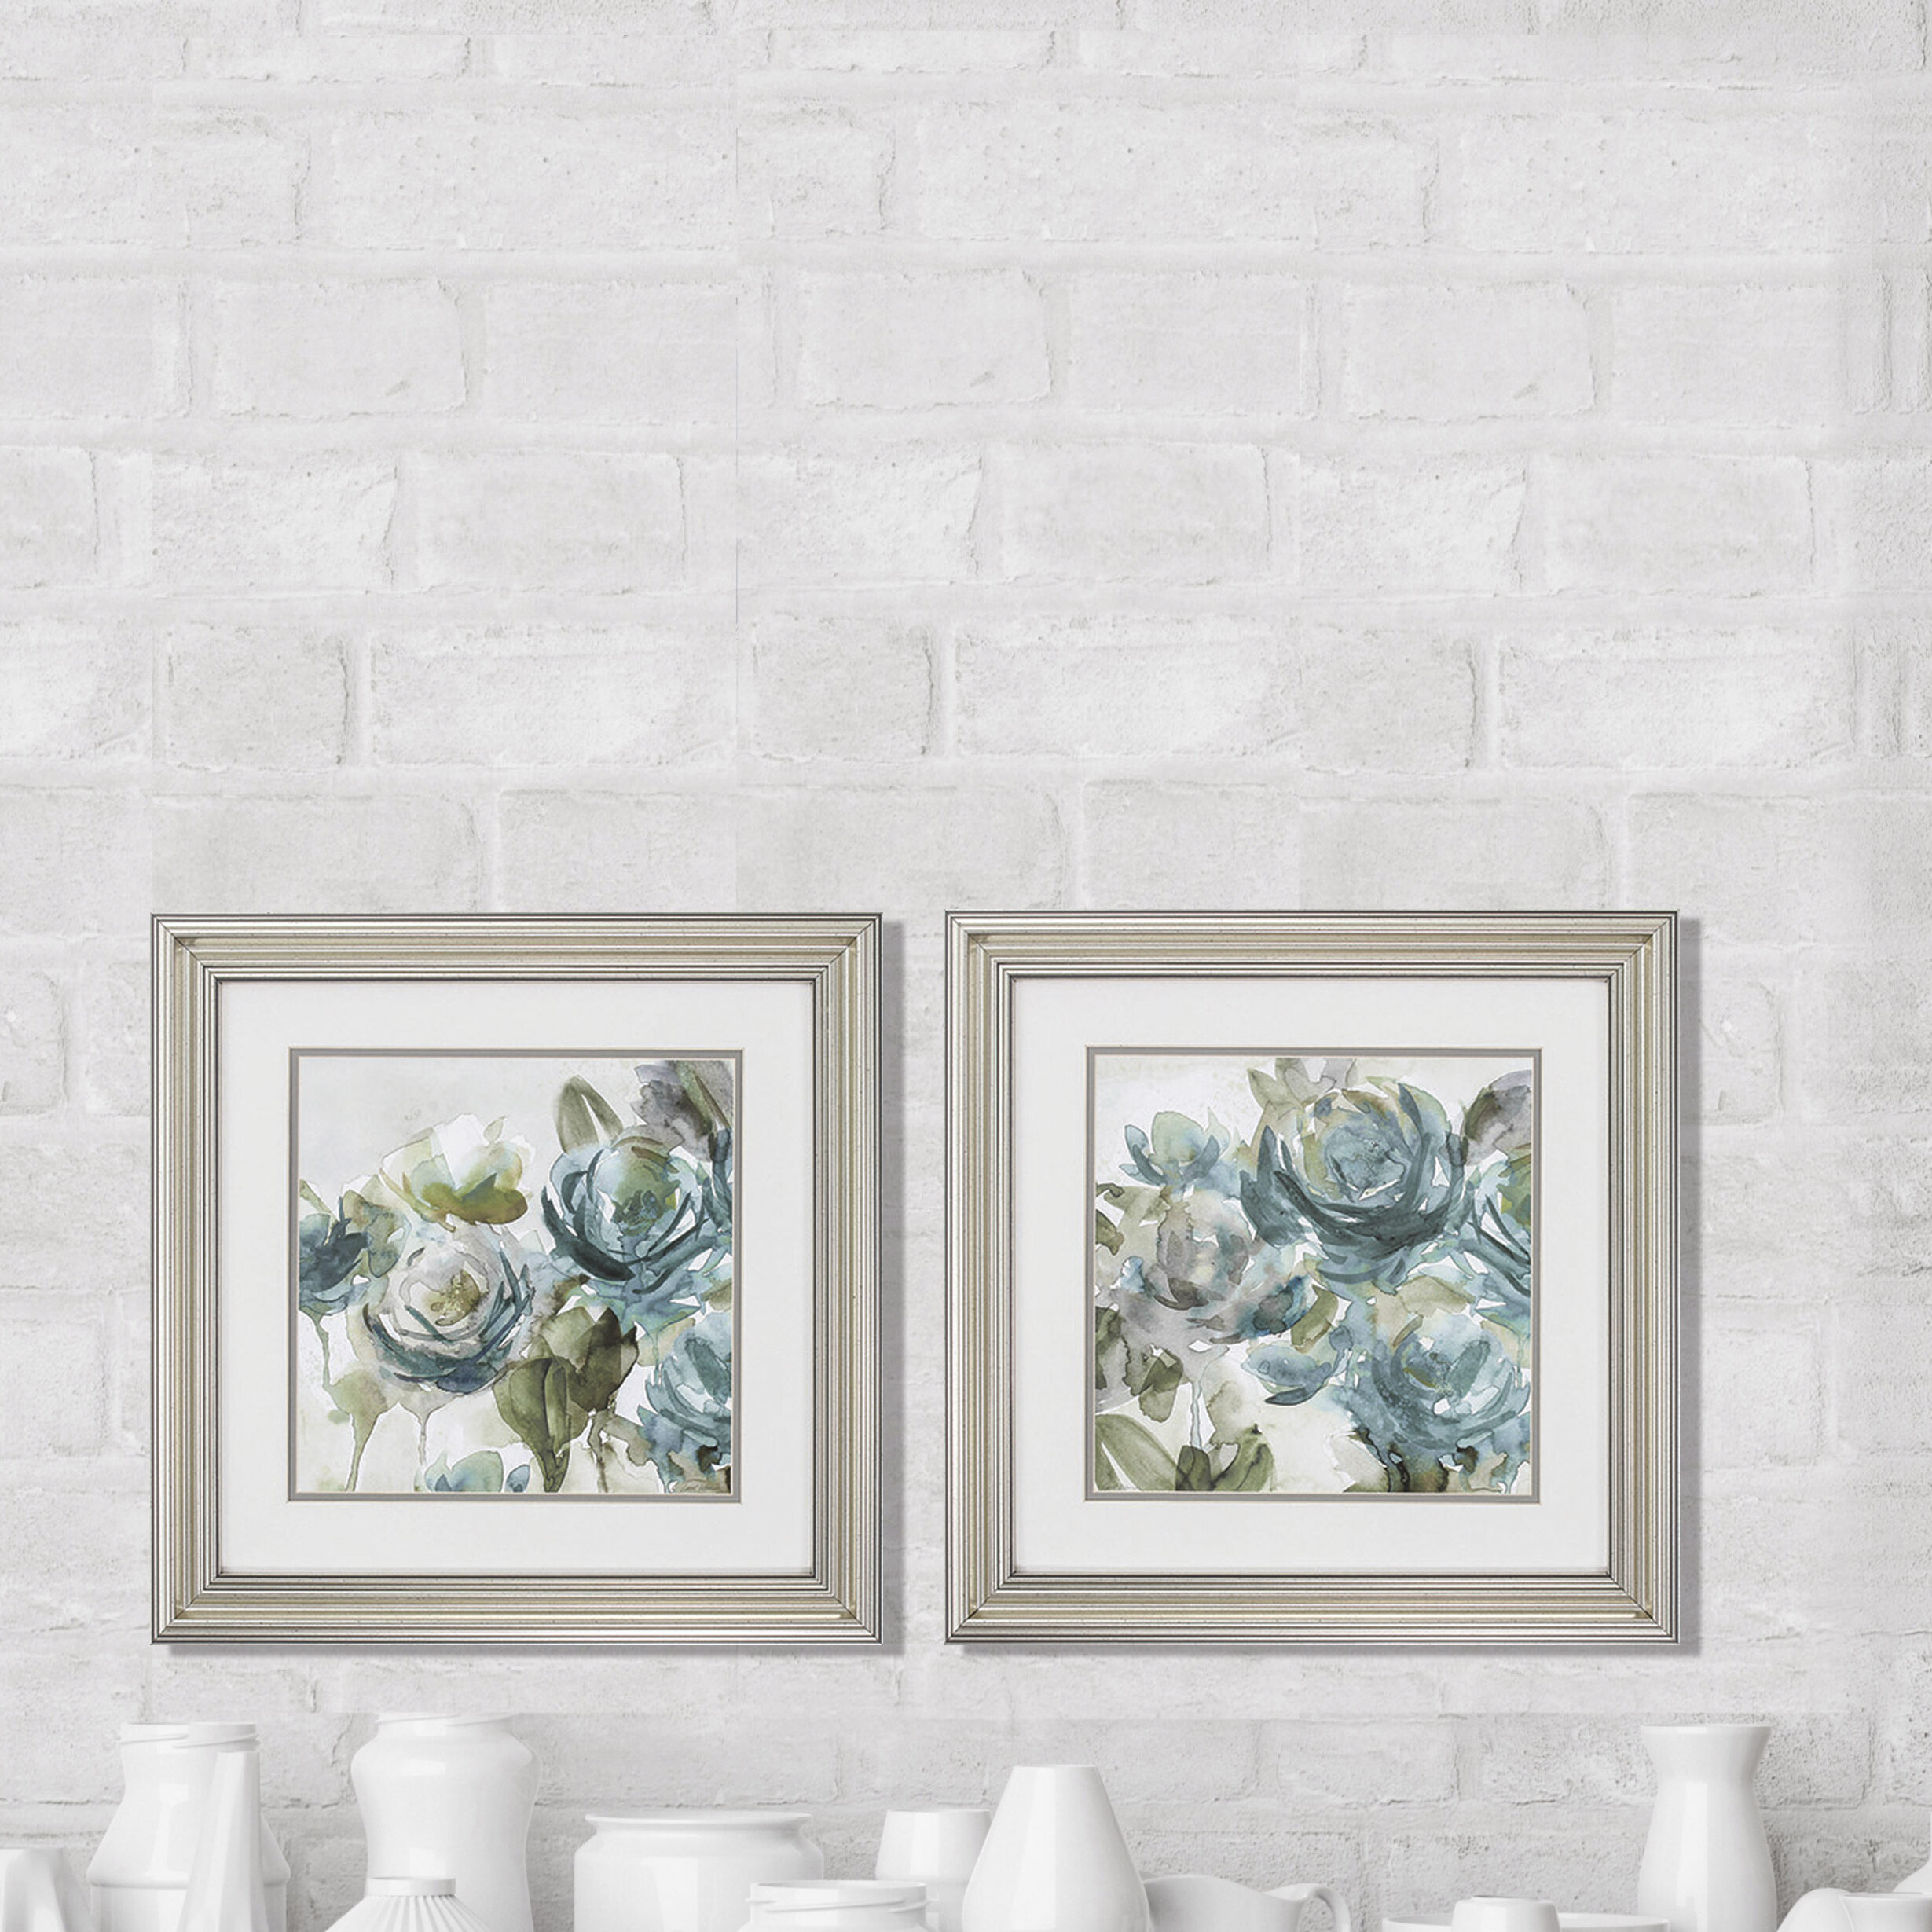 Farmhouse & Rustic Alcott Hill Wall Art | Birch Lane For Vase And Bowl Wall Decor By Alcott Hill (View 15 of 30)